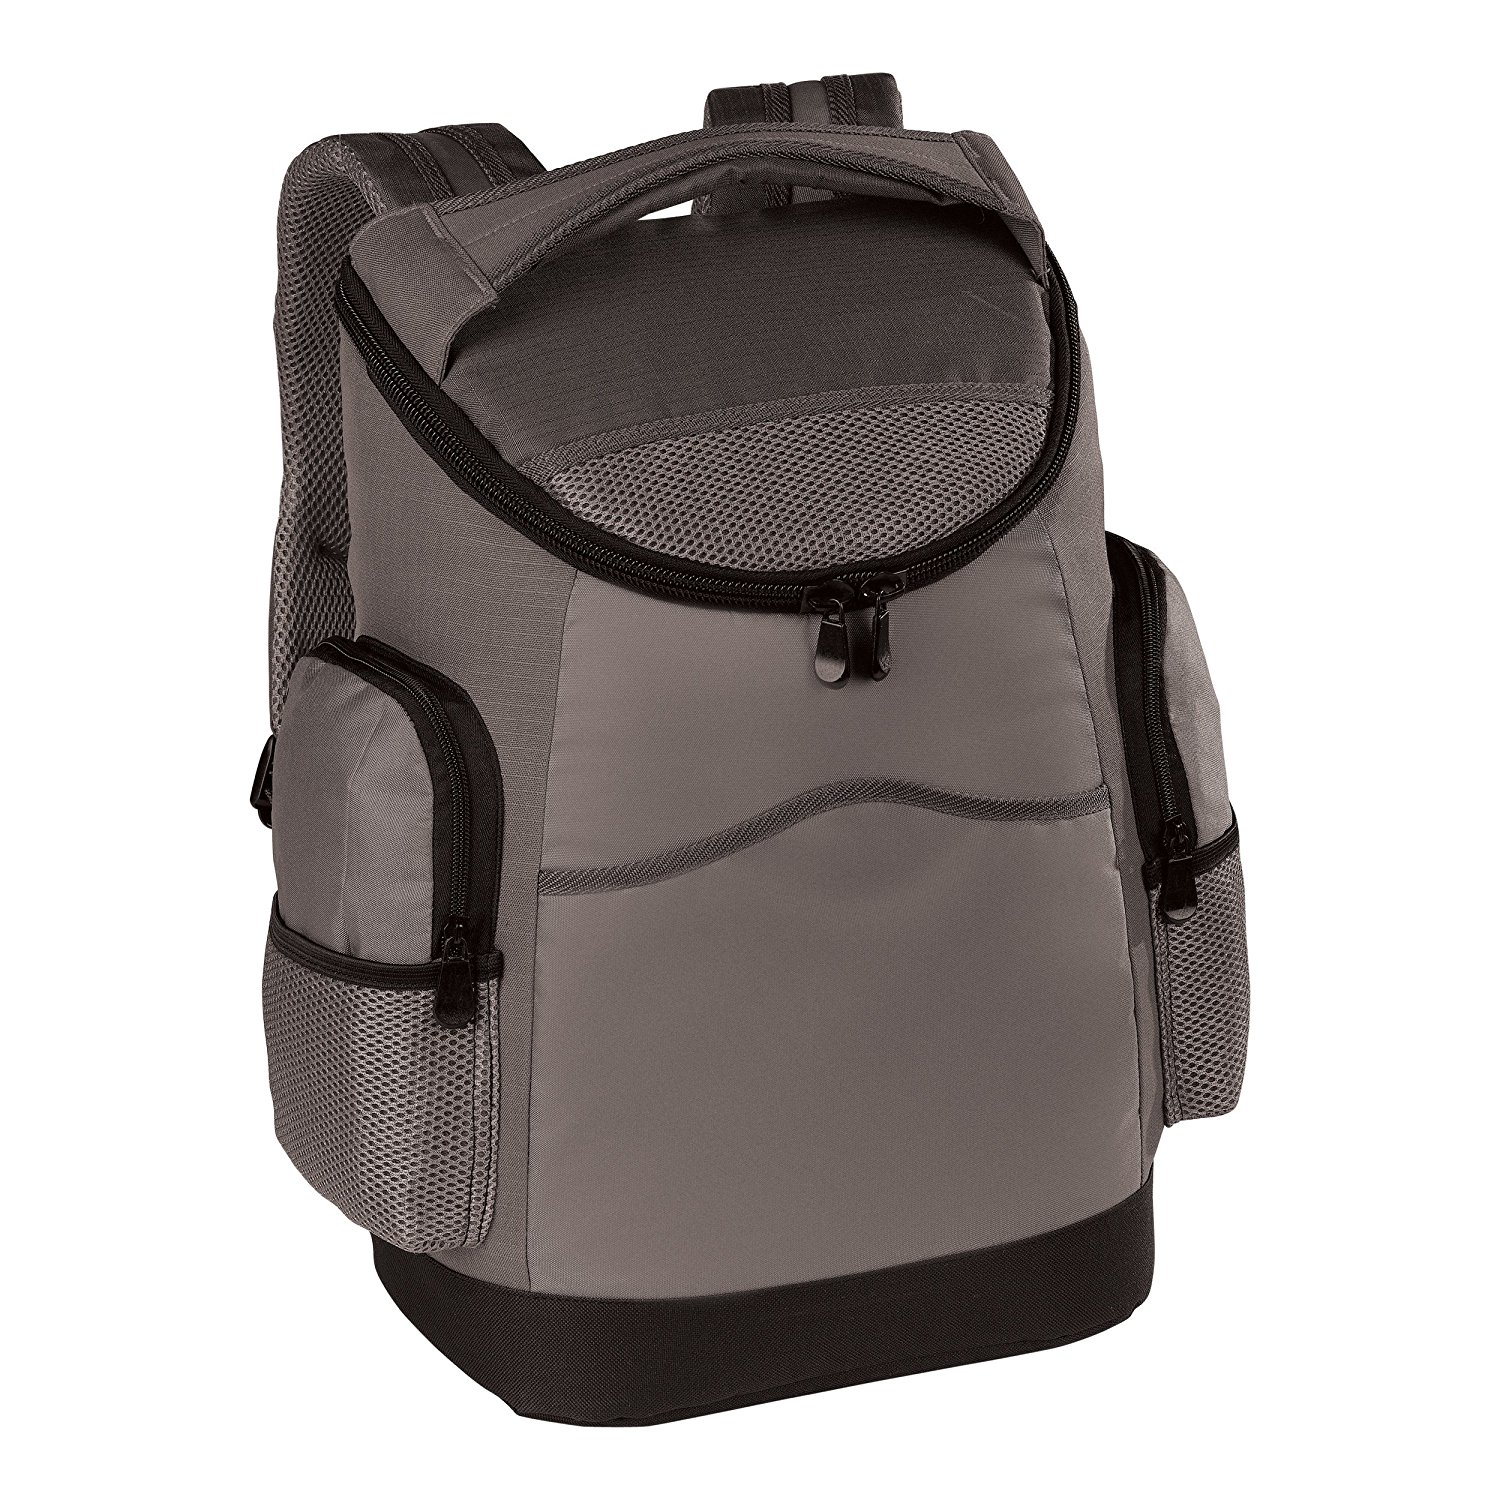 Oagear Ultimate Backpack Cooler